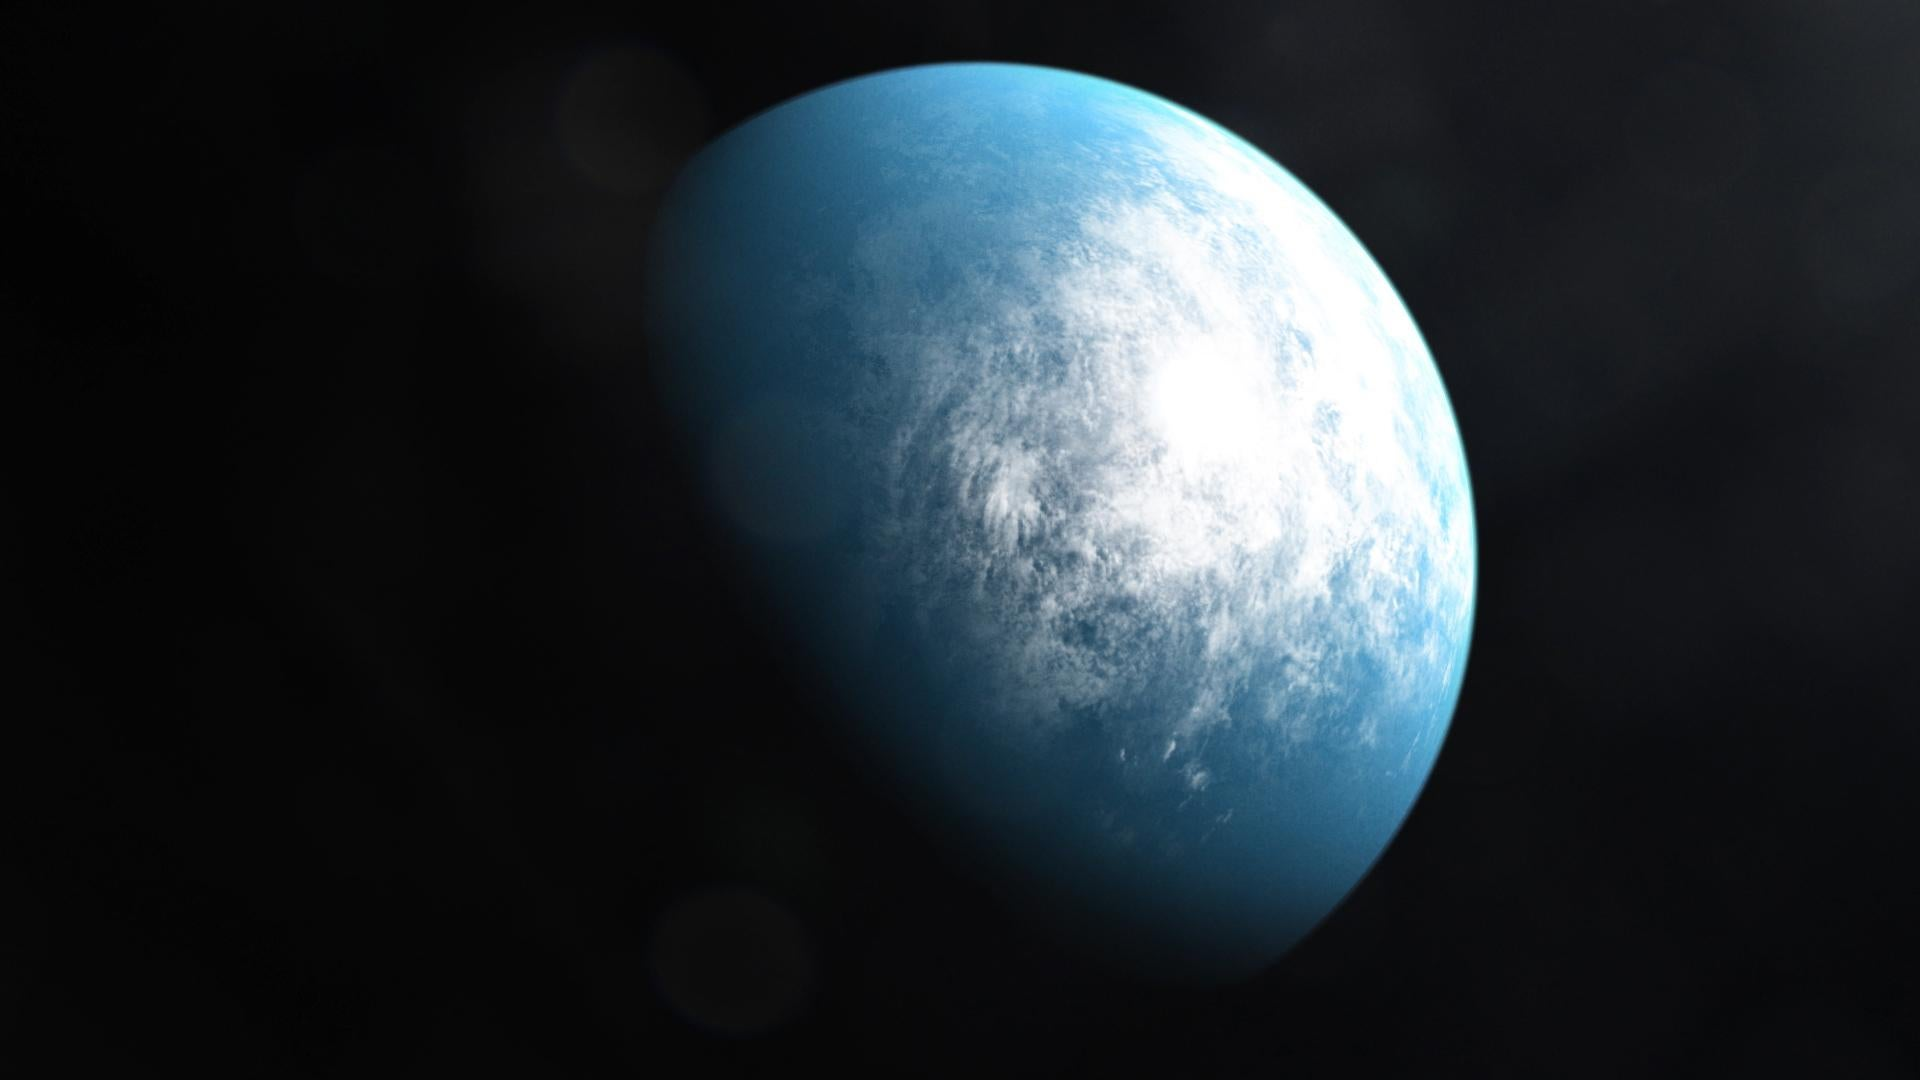 Astronomers Just Found Another Potentially Habitable Exoplanet